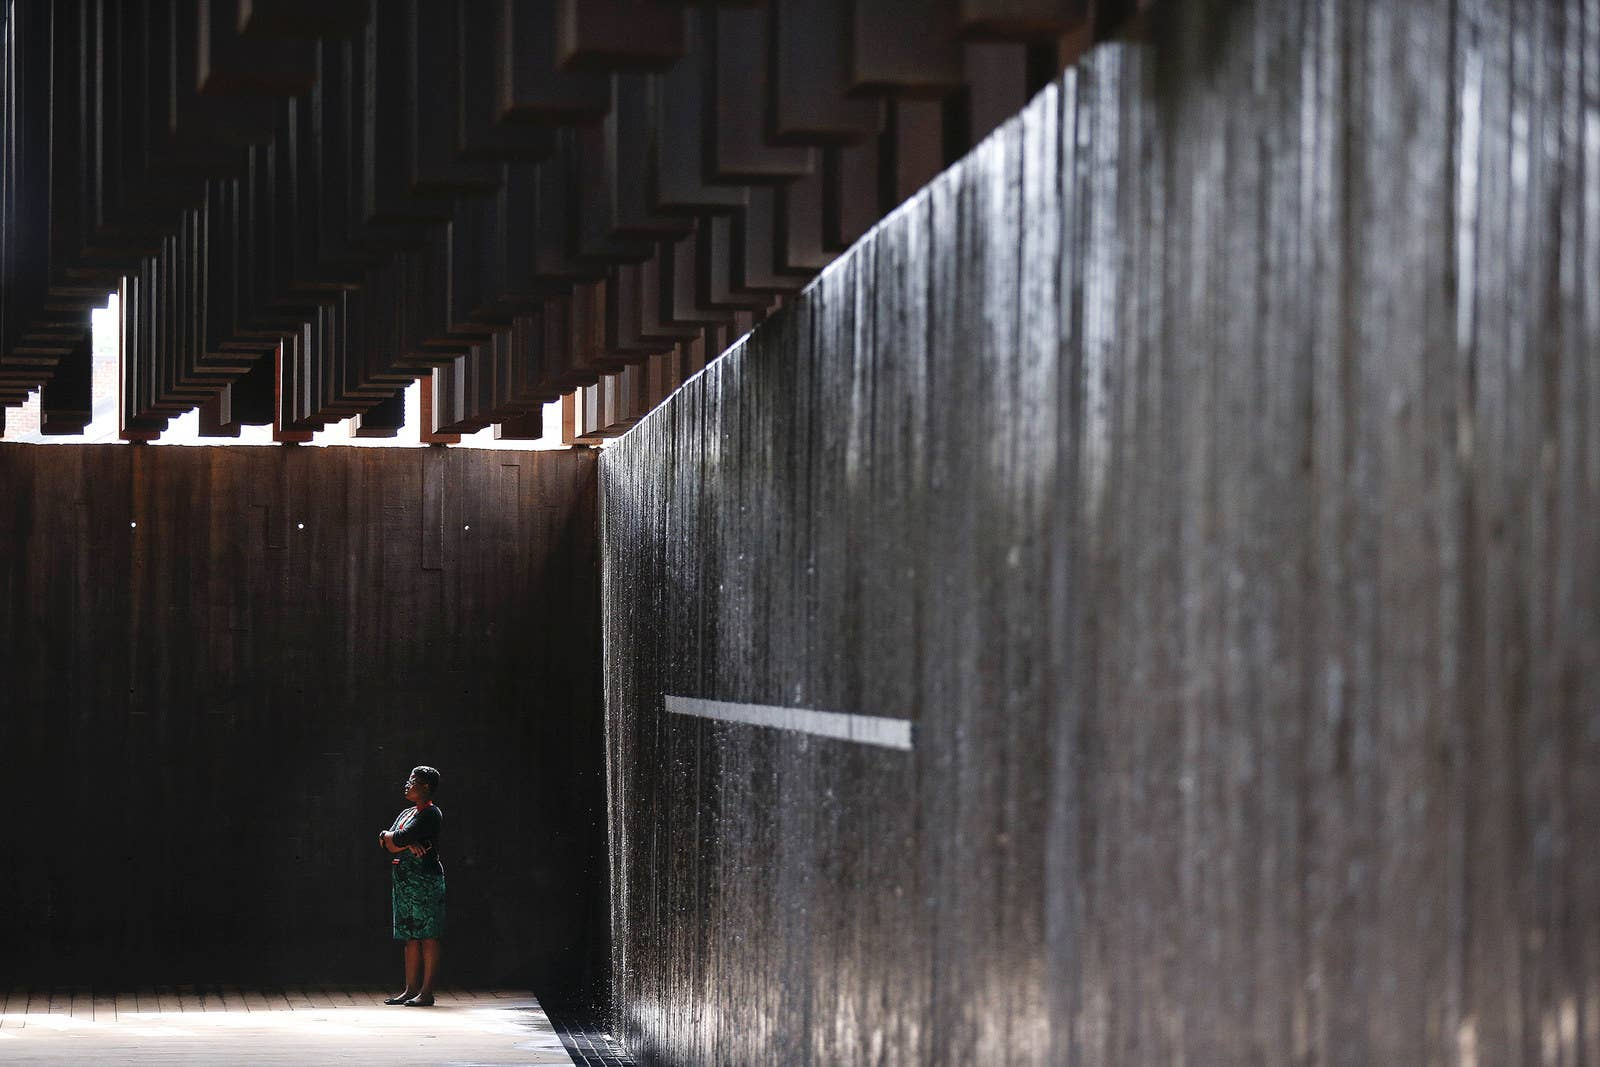 A visitor to the memorial stands in reflection amid the steel monuments above.